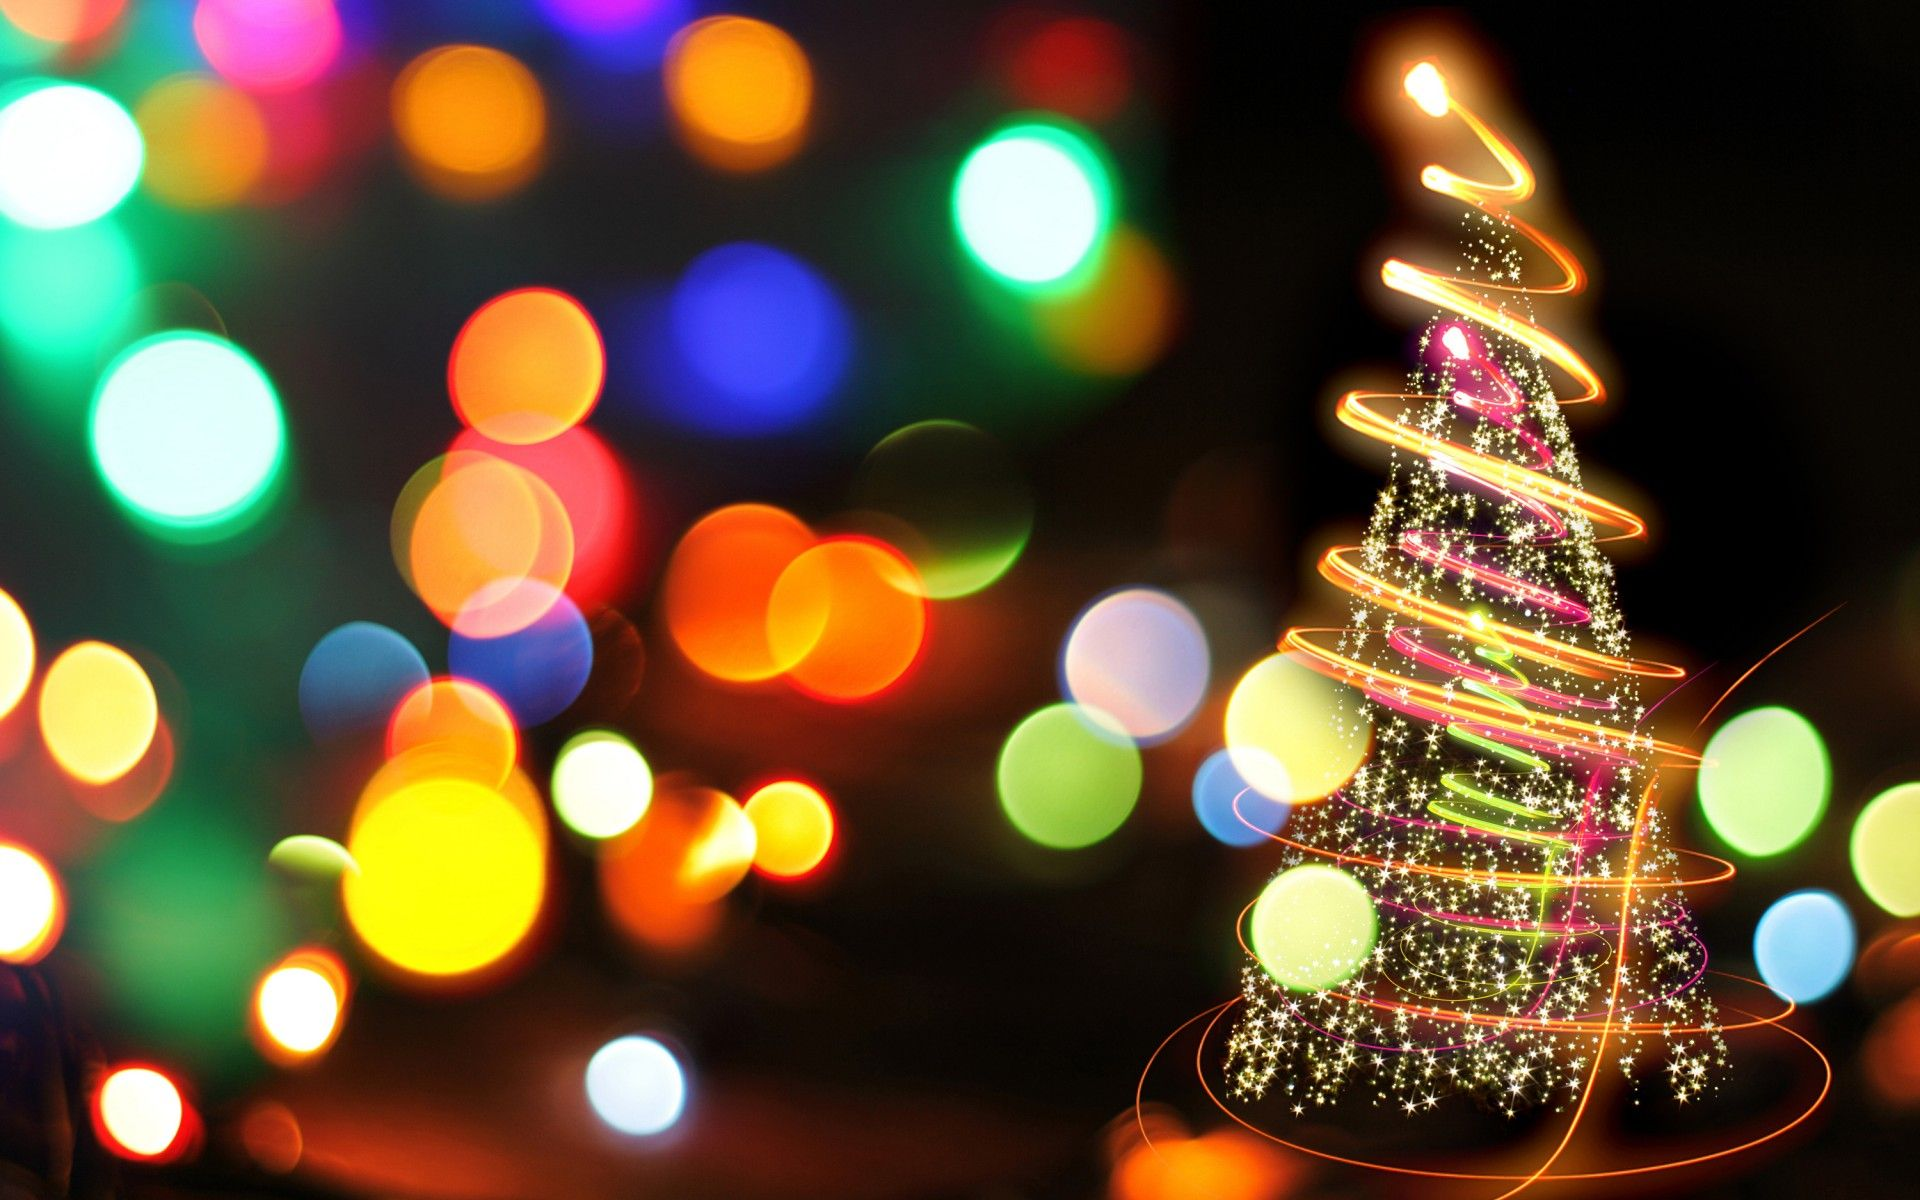 1920x1200 Free HD Christmas Lights Wallpapers | PixelsTalk.Net